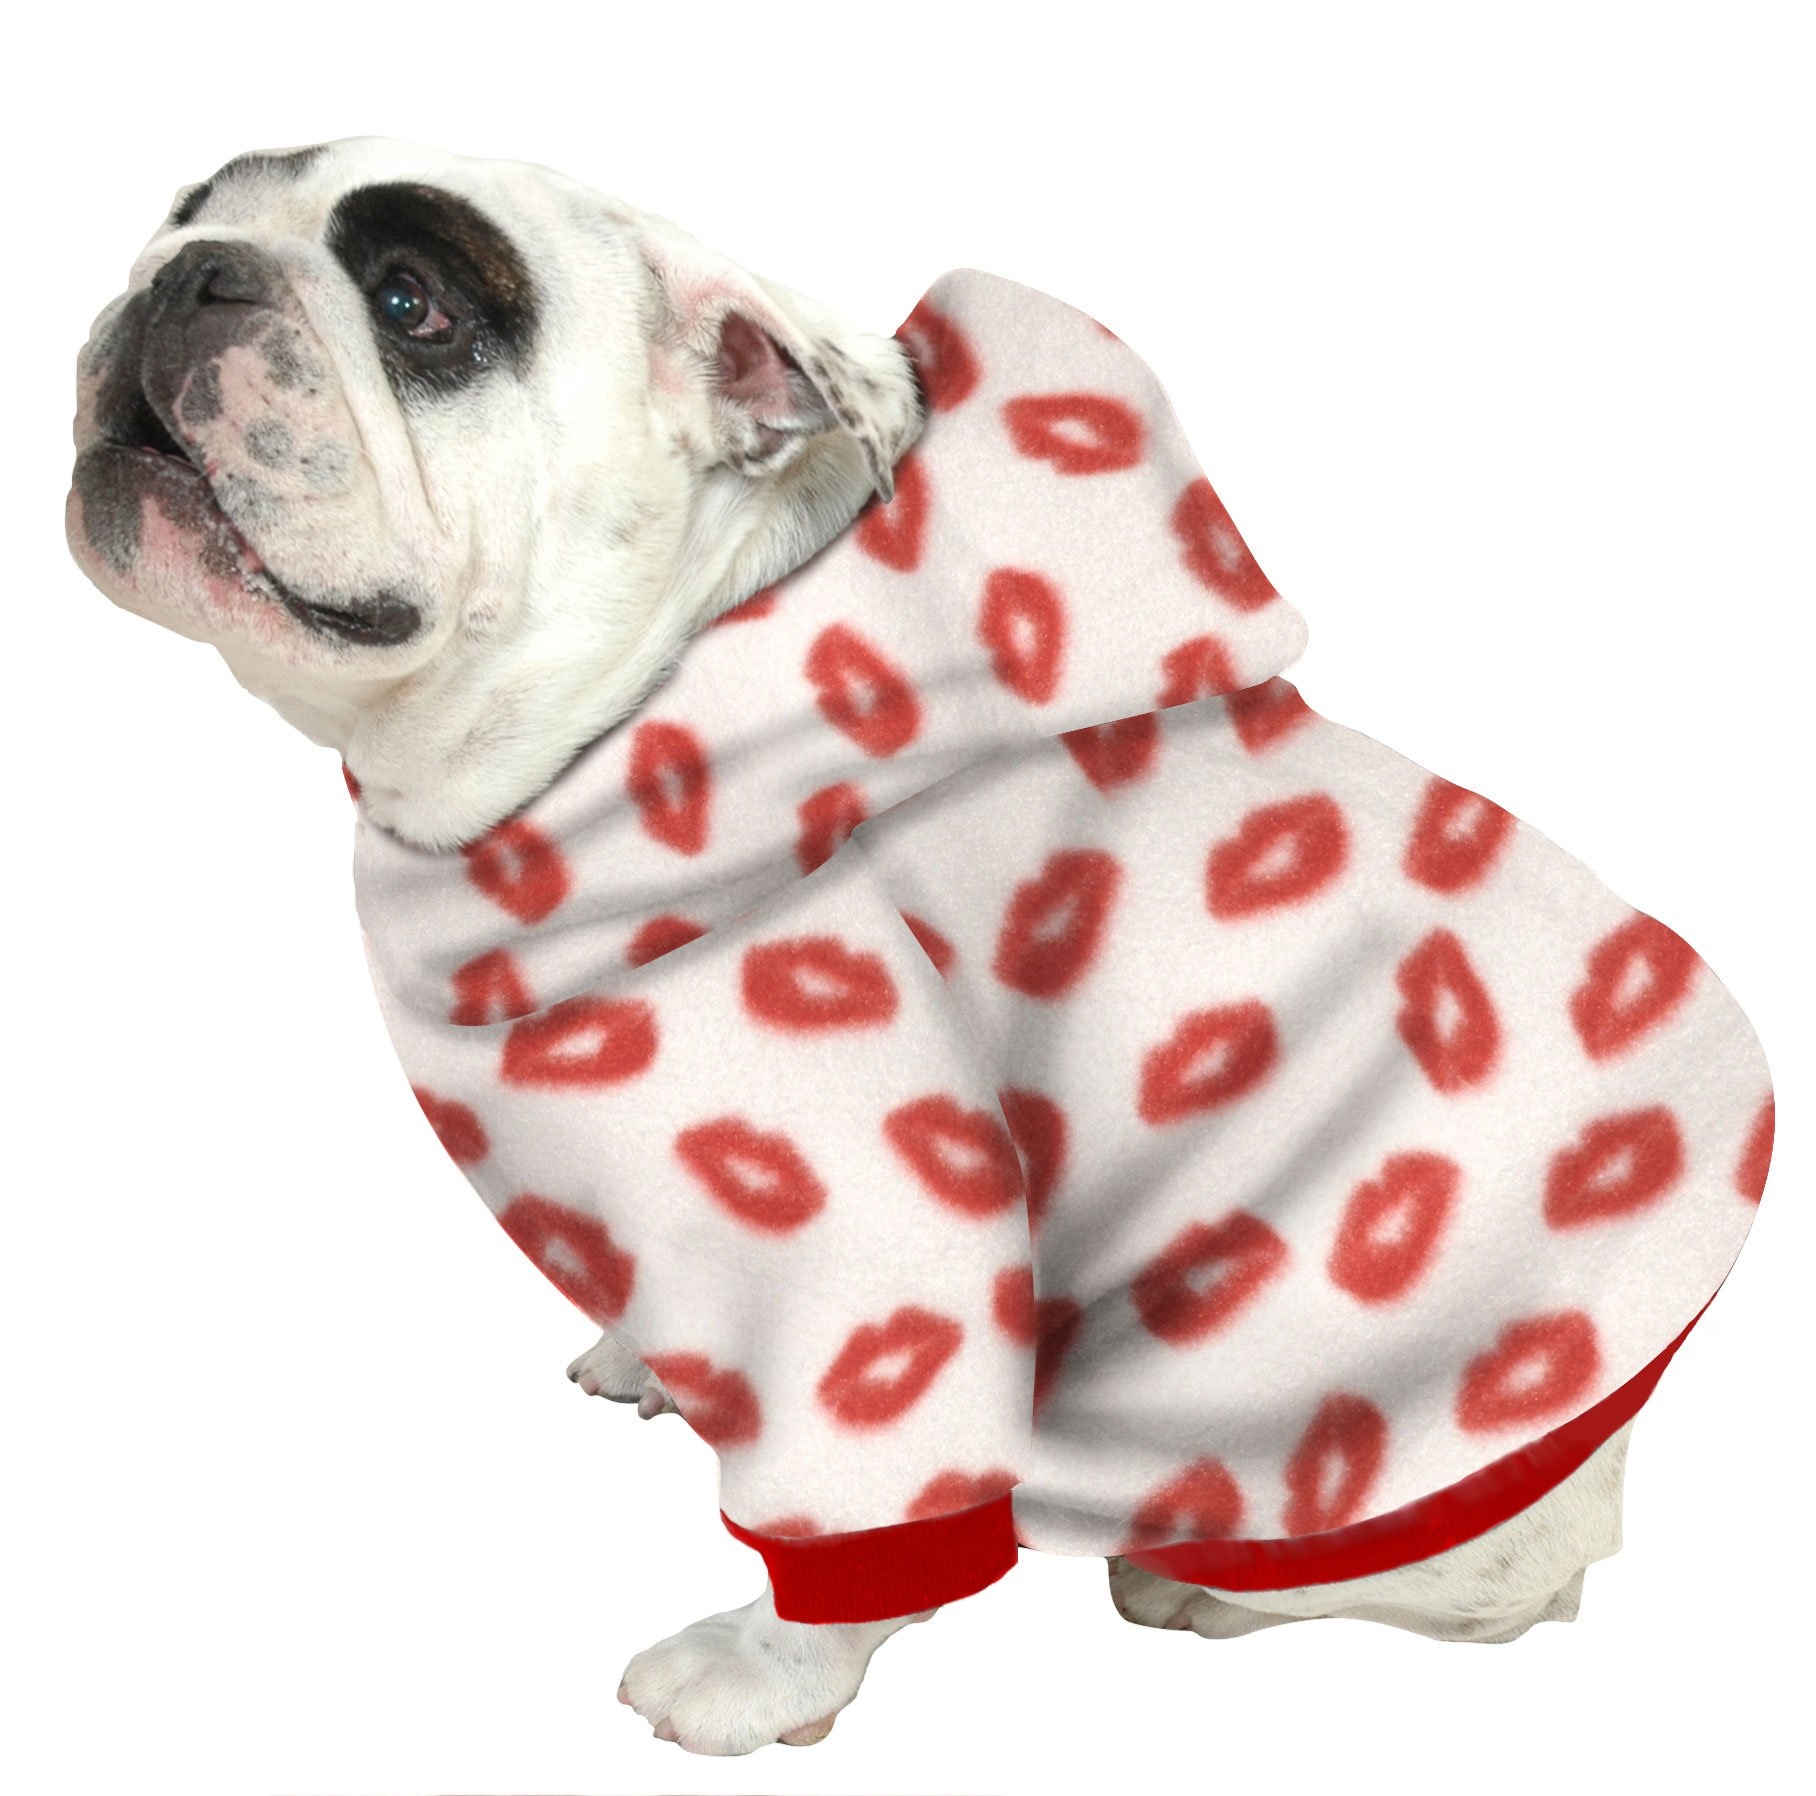 Plus Size Pups English Bulldog Dog Sweatshirts - Sizes Beefy and Bigger Than Beefy with More Than 20 Fleece Patterns to Choose from! (Bigger Than Beefy, Red Lips) by Plus Size Pups